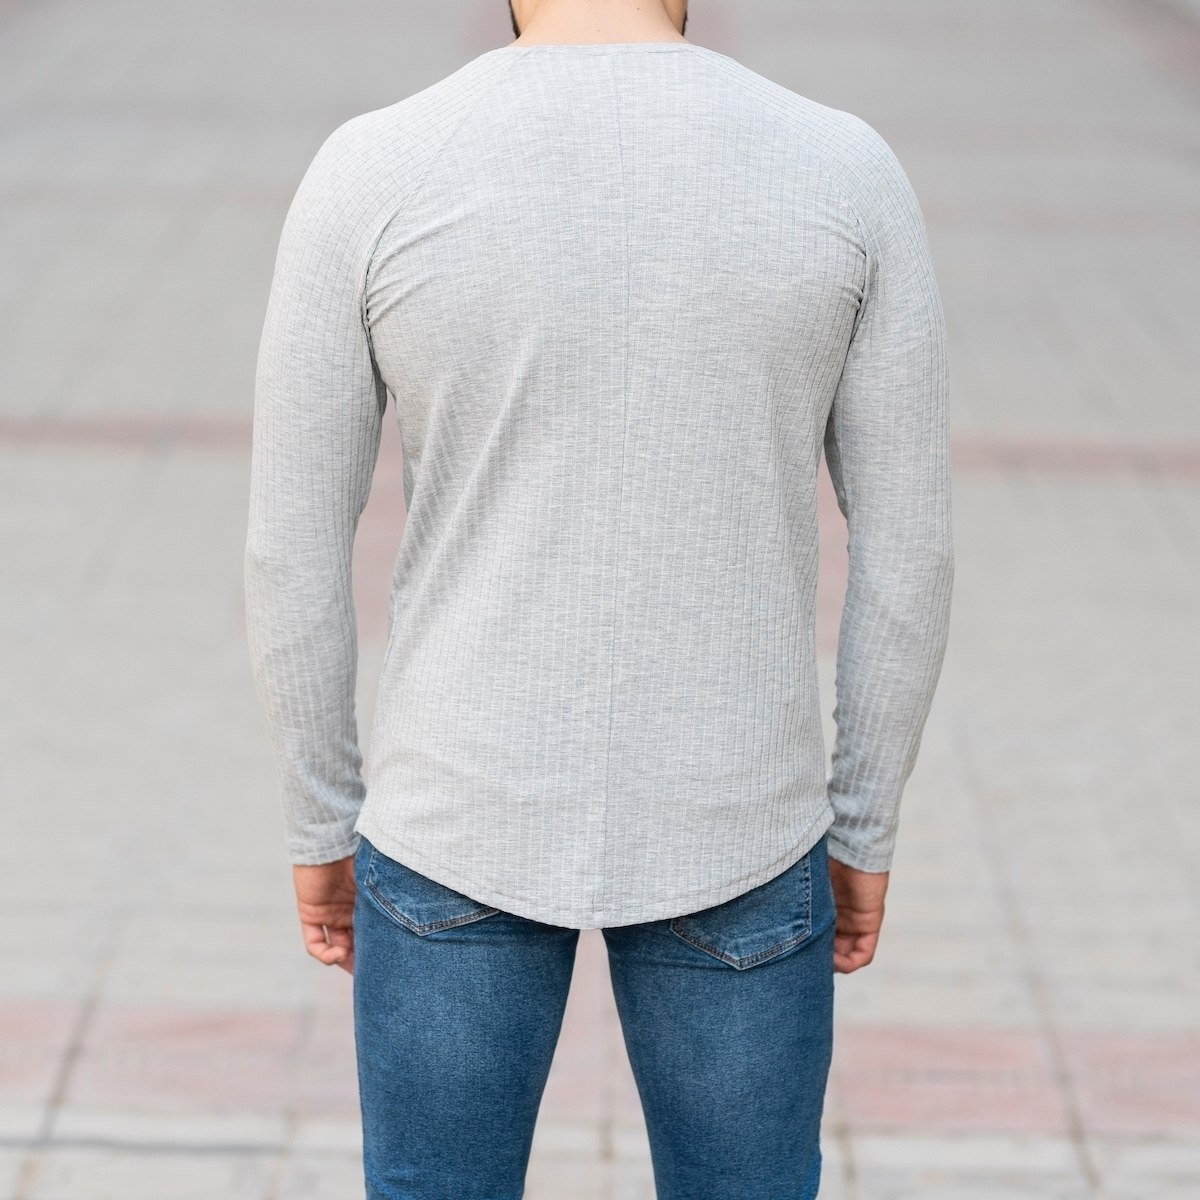 Stone Gray Sweatshirt With Stripe Details Mv Premium Brand - 5